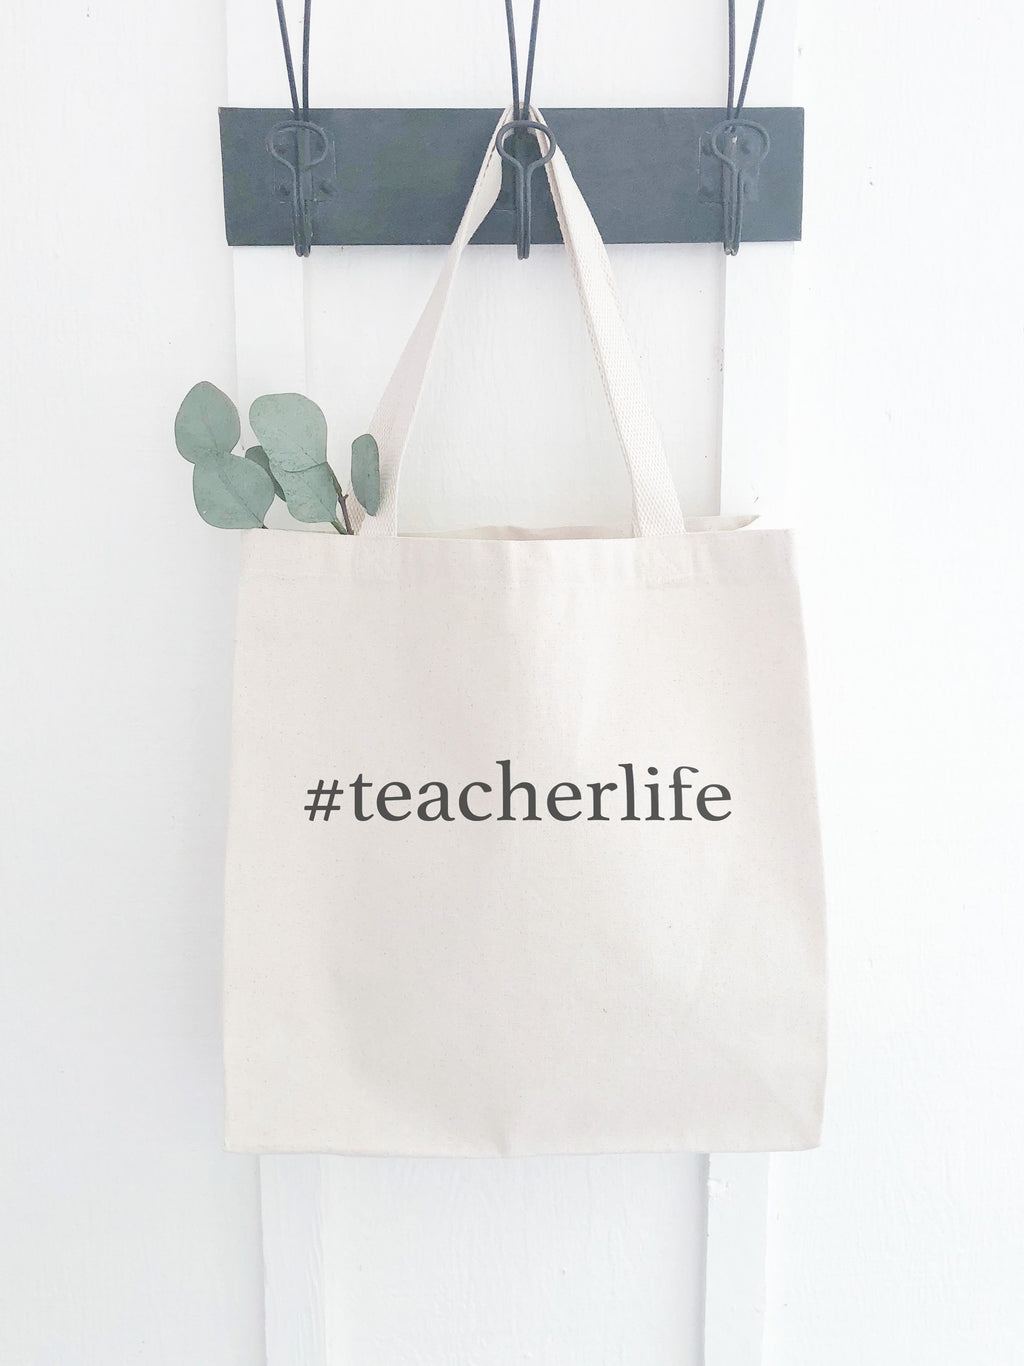 Teacher Life Canvas Bag, Reusable Shopping Tote, Teacher Graduation College Grad gift for her, Sturdy Durable Tote for Teacher Appreciation